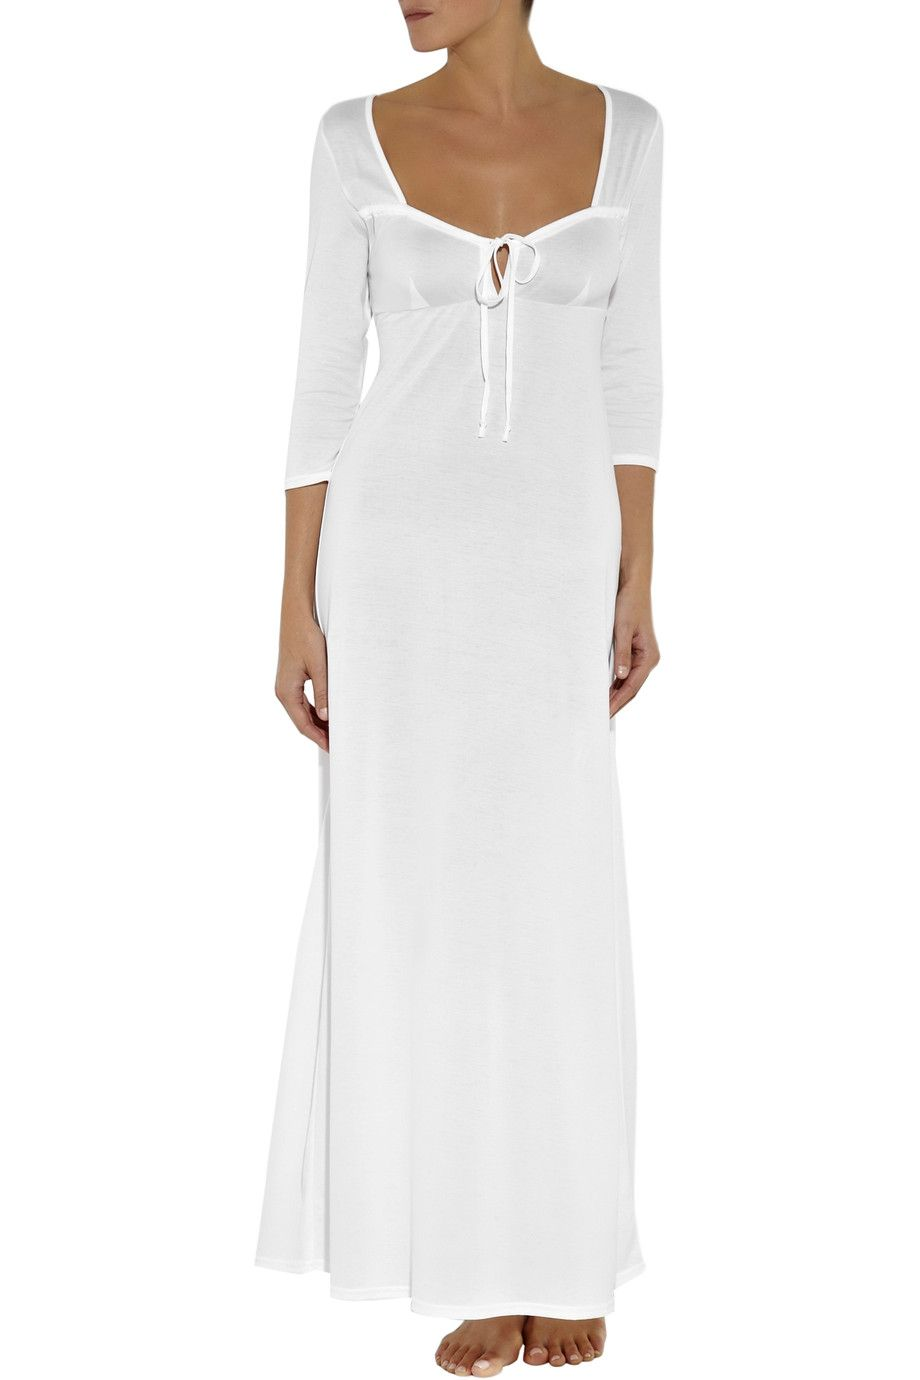 0895048386 Shop on-sale Bodas Cotton-jersey nightdress. Browse other discount designer  Lingerie   more on The Most Fashionable Fashion Outlet